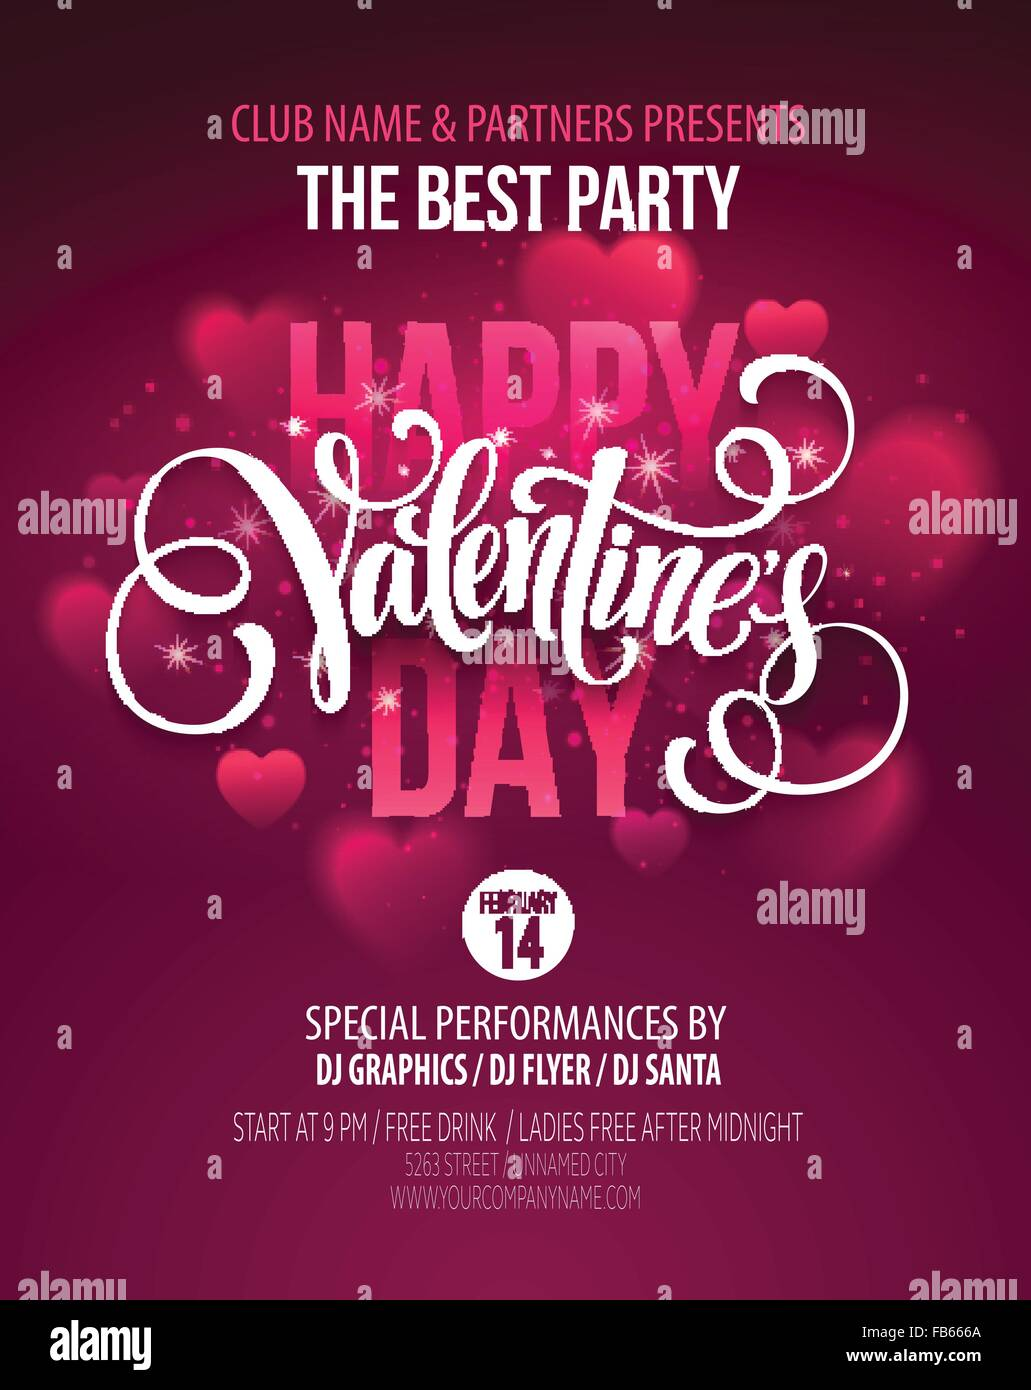 Valentines Day Party Poster Design Template Of Invitation Flyer